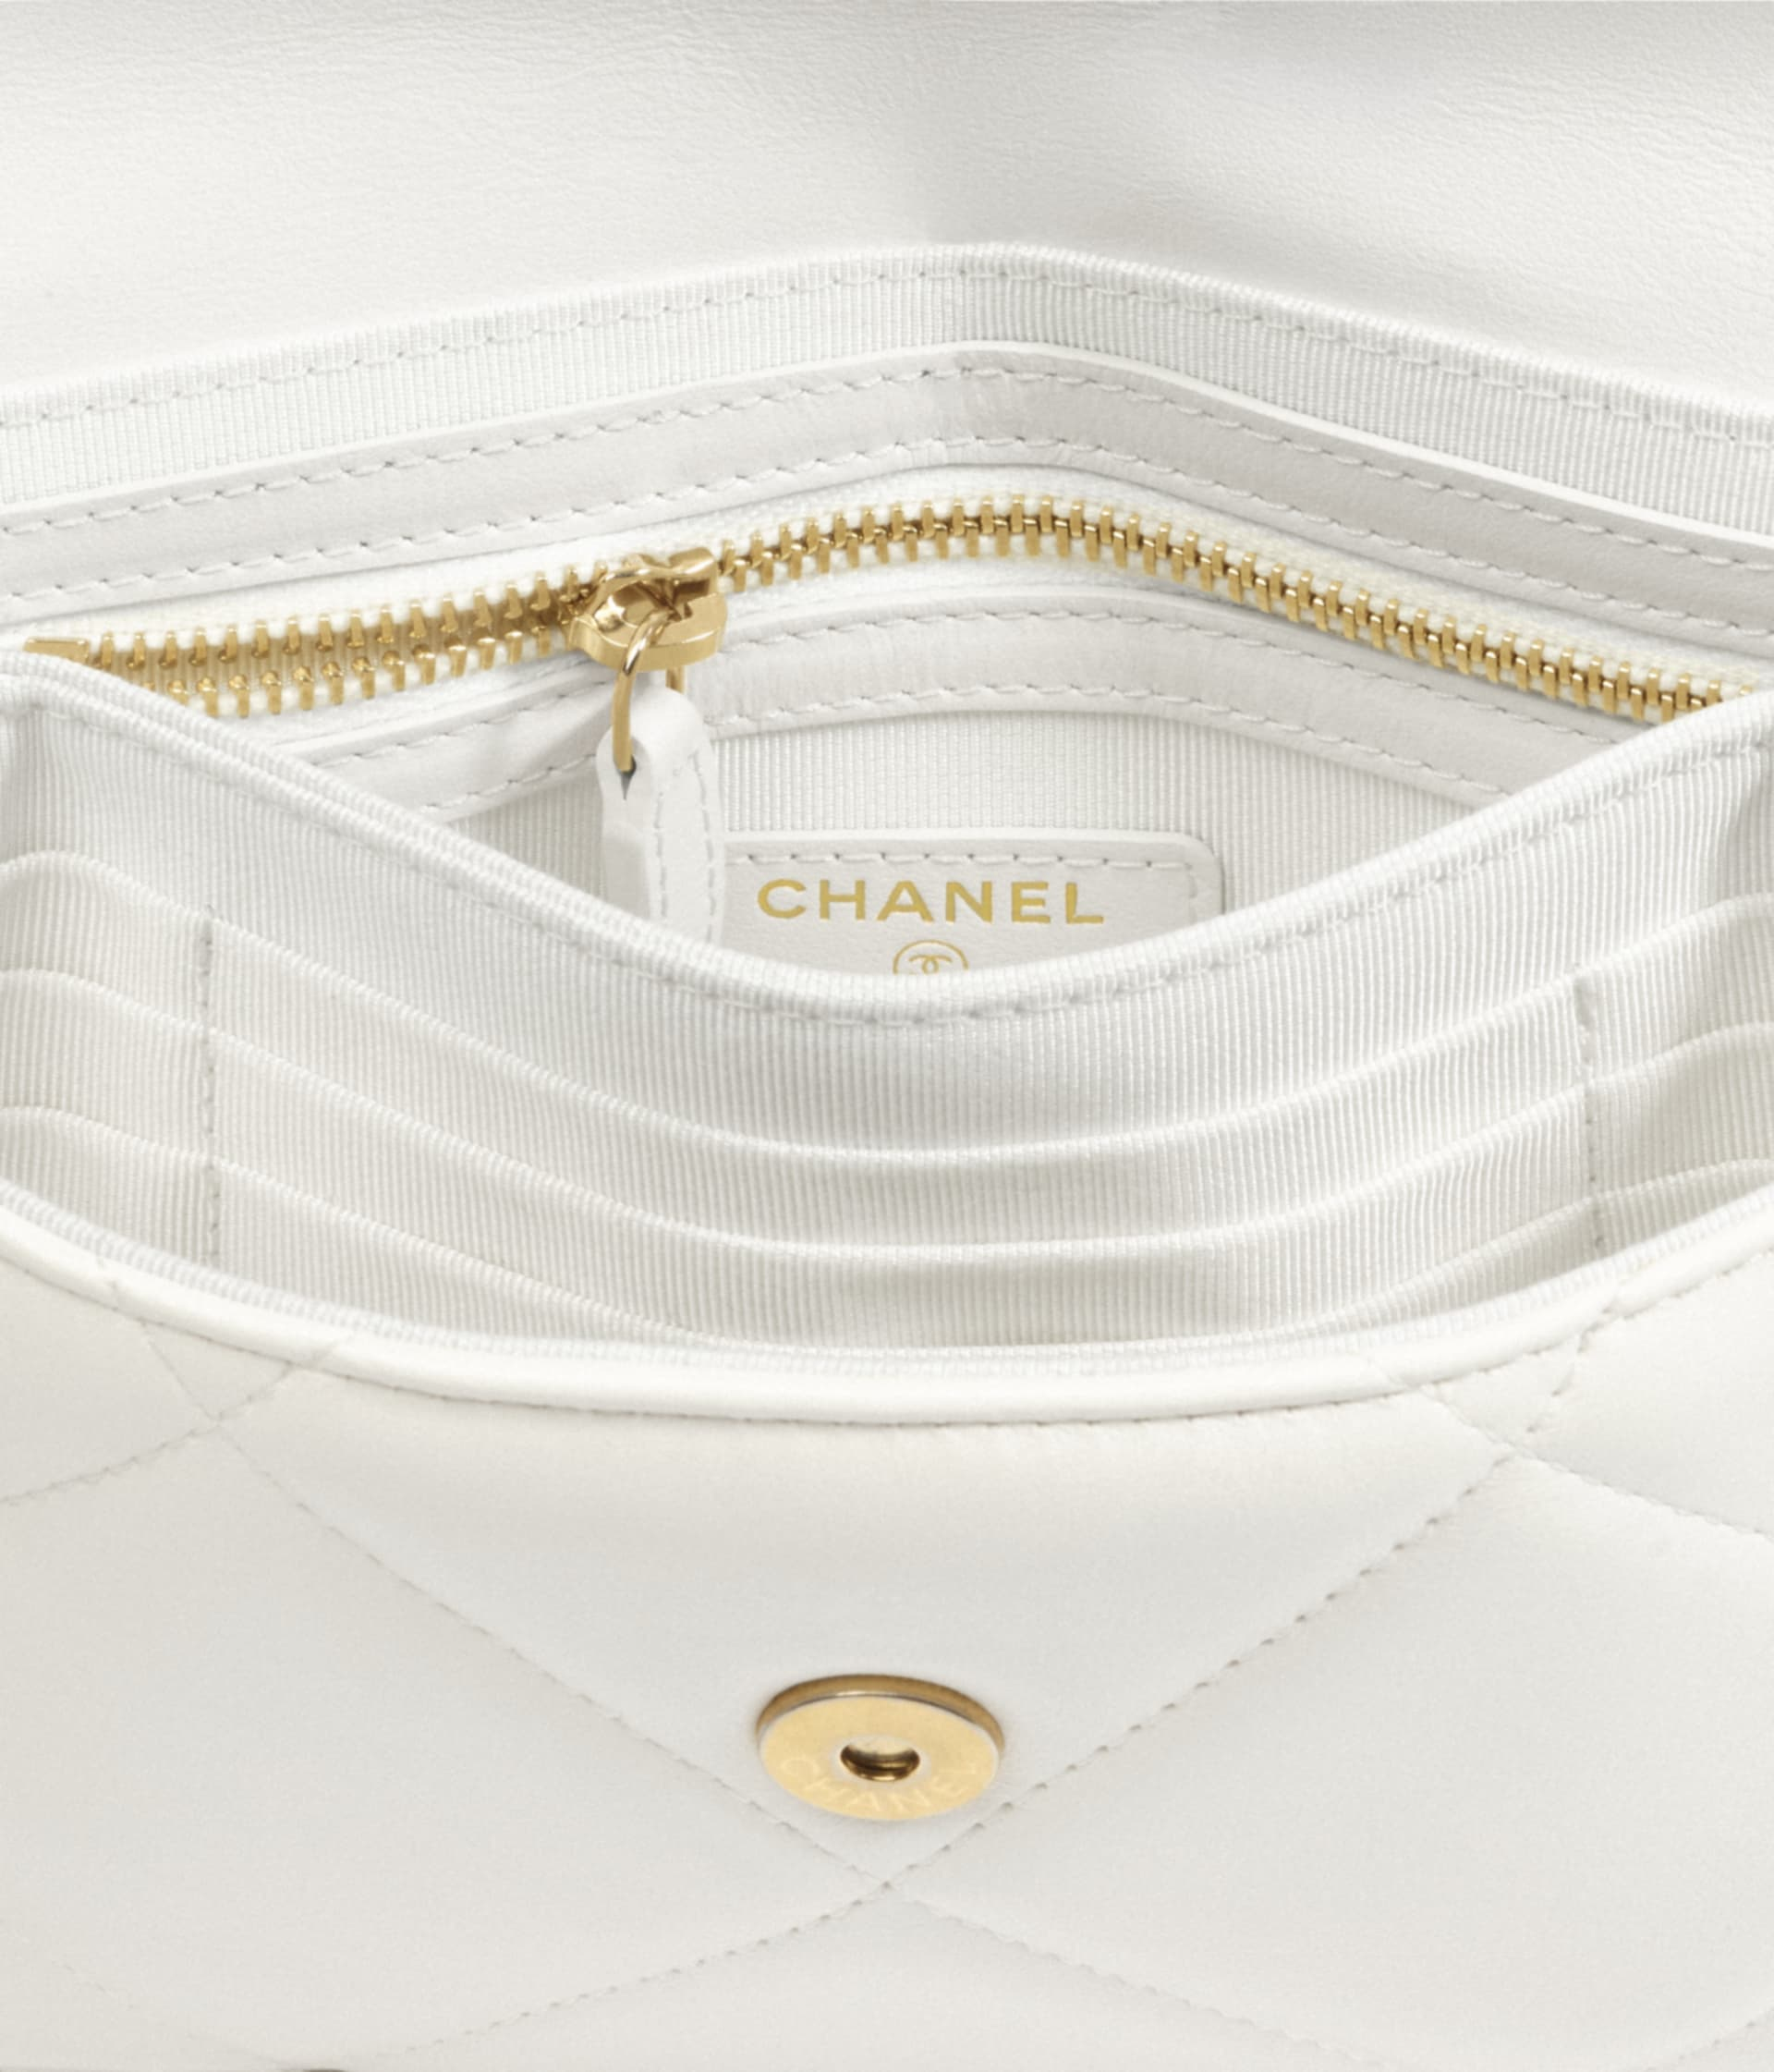 image 2 - CHANEL 19 Pouch with Handle - Lambskin, Gold-Tone, Silver-Tone & Ruthenium-Finish Metal - White